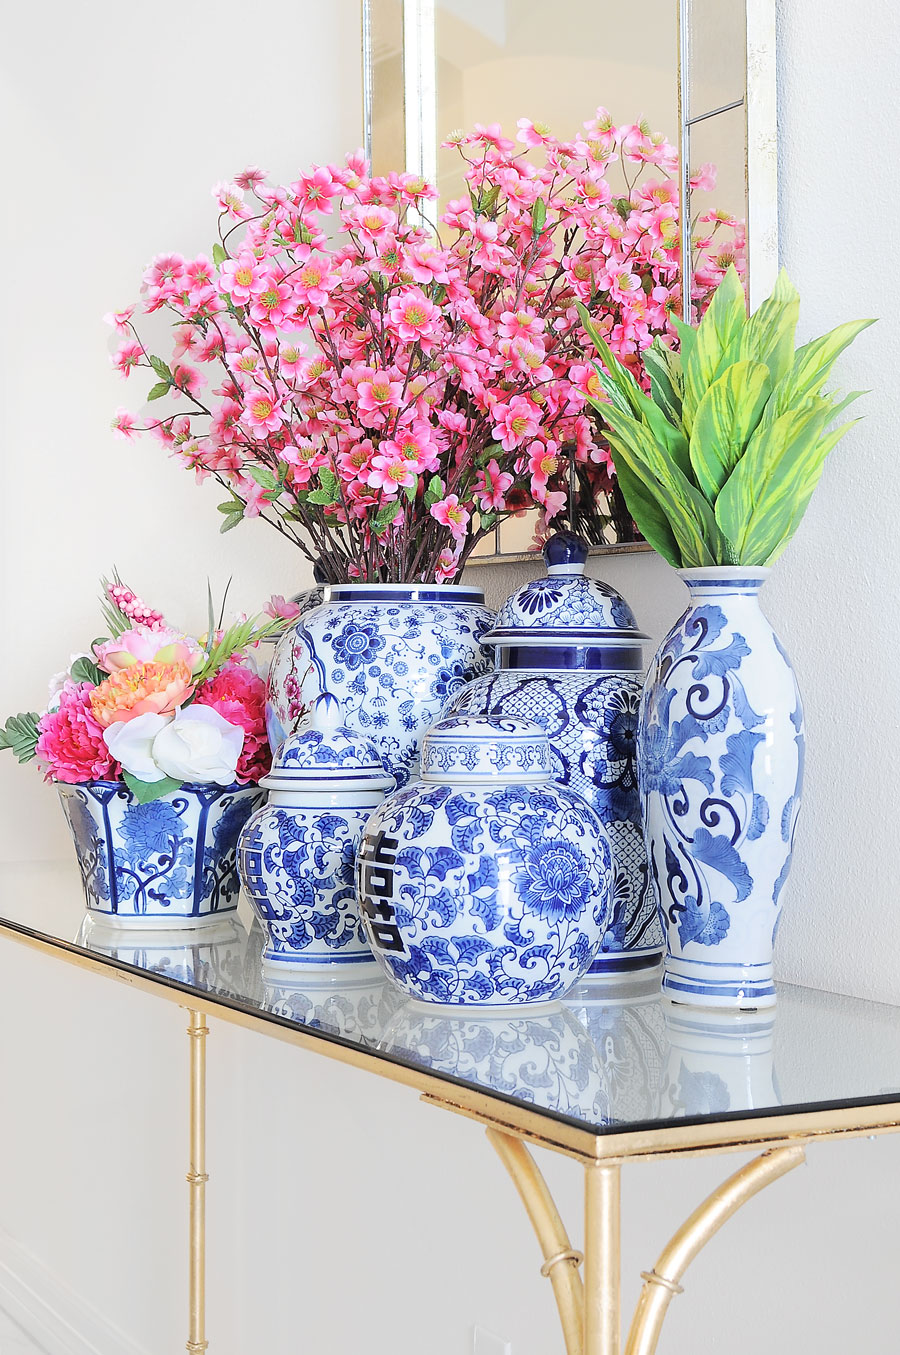 A chinoiserie collection of ginger jars and florals look chic styled on a console table in a foyer.